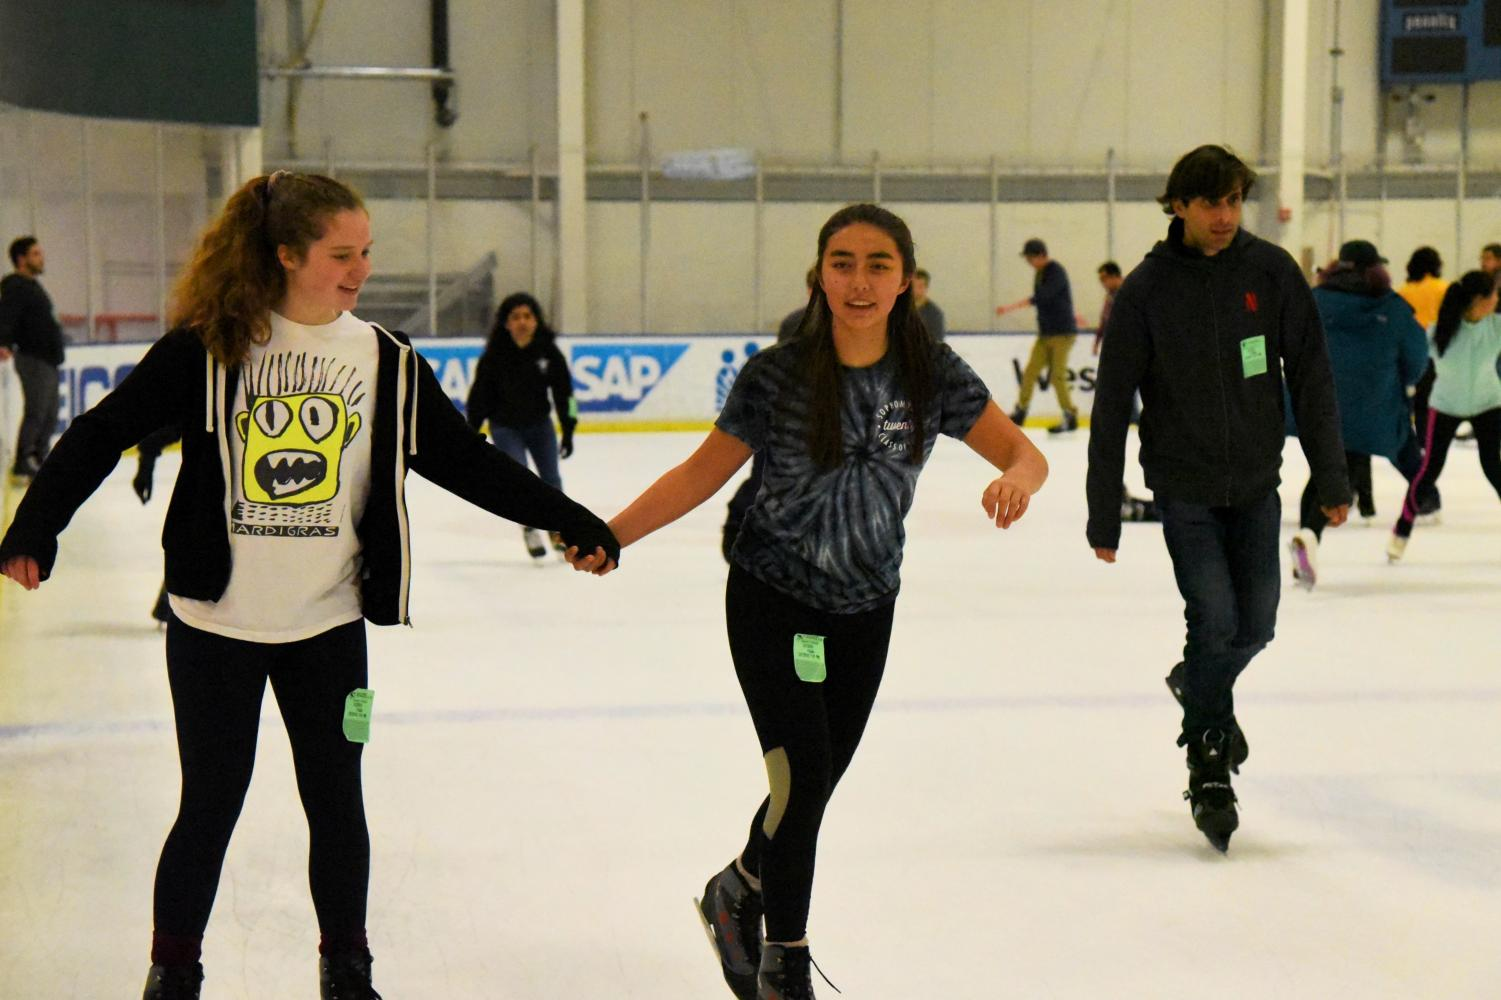 Charlotte Blanc (10) and Cas Ruedy (10) skate around the Solar4America Ice rink together. Trip attendees had the option of taking the bus from the upper school at 7 p.m. and returning to campus at 9:30 p.m. or driving to the venue separately.